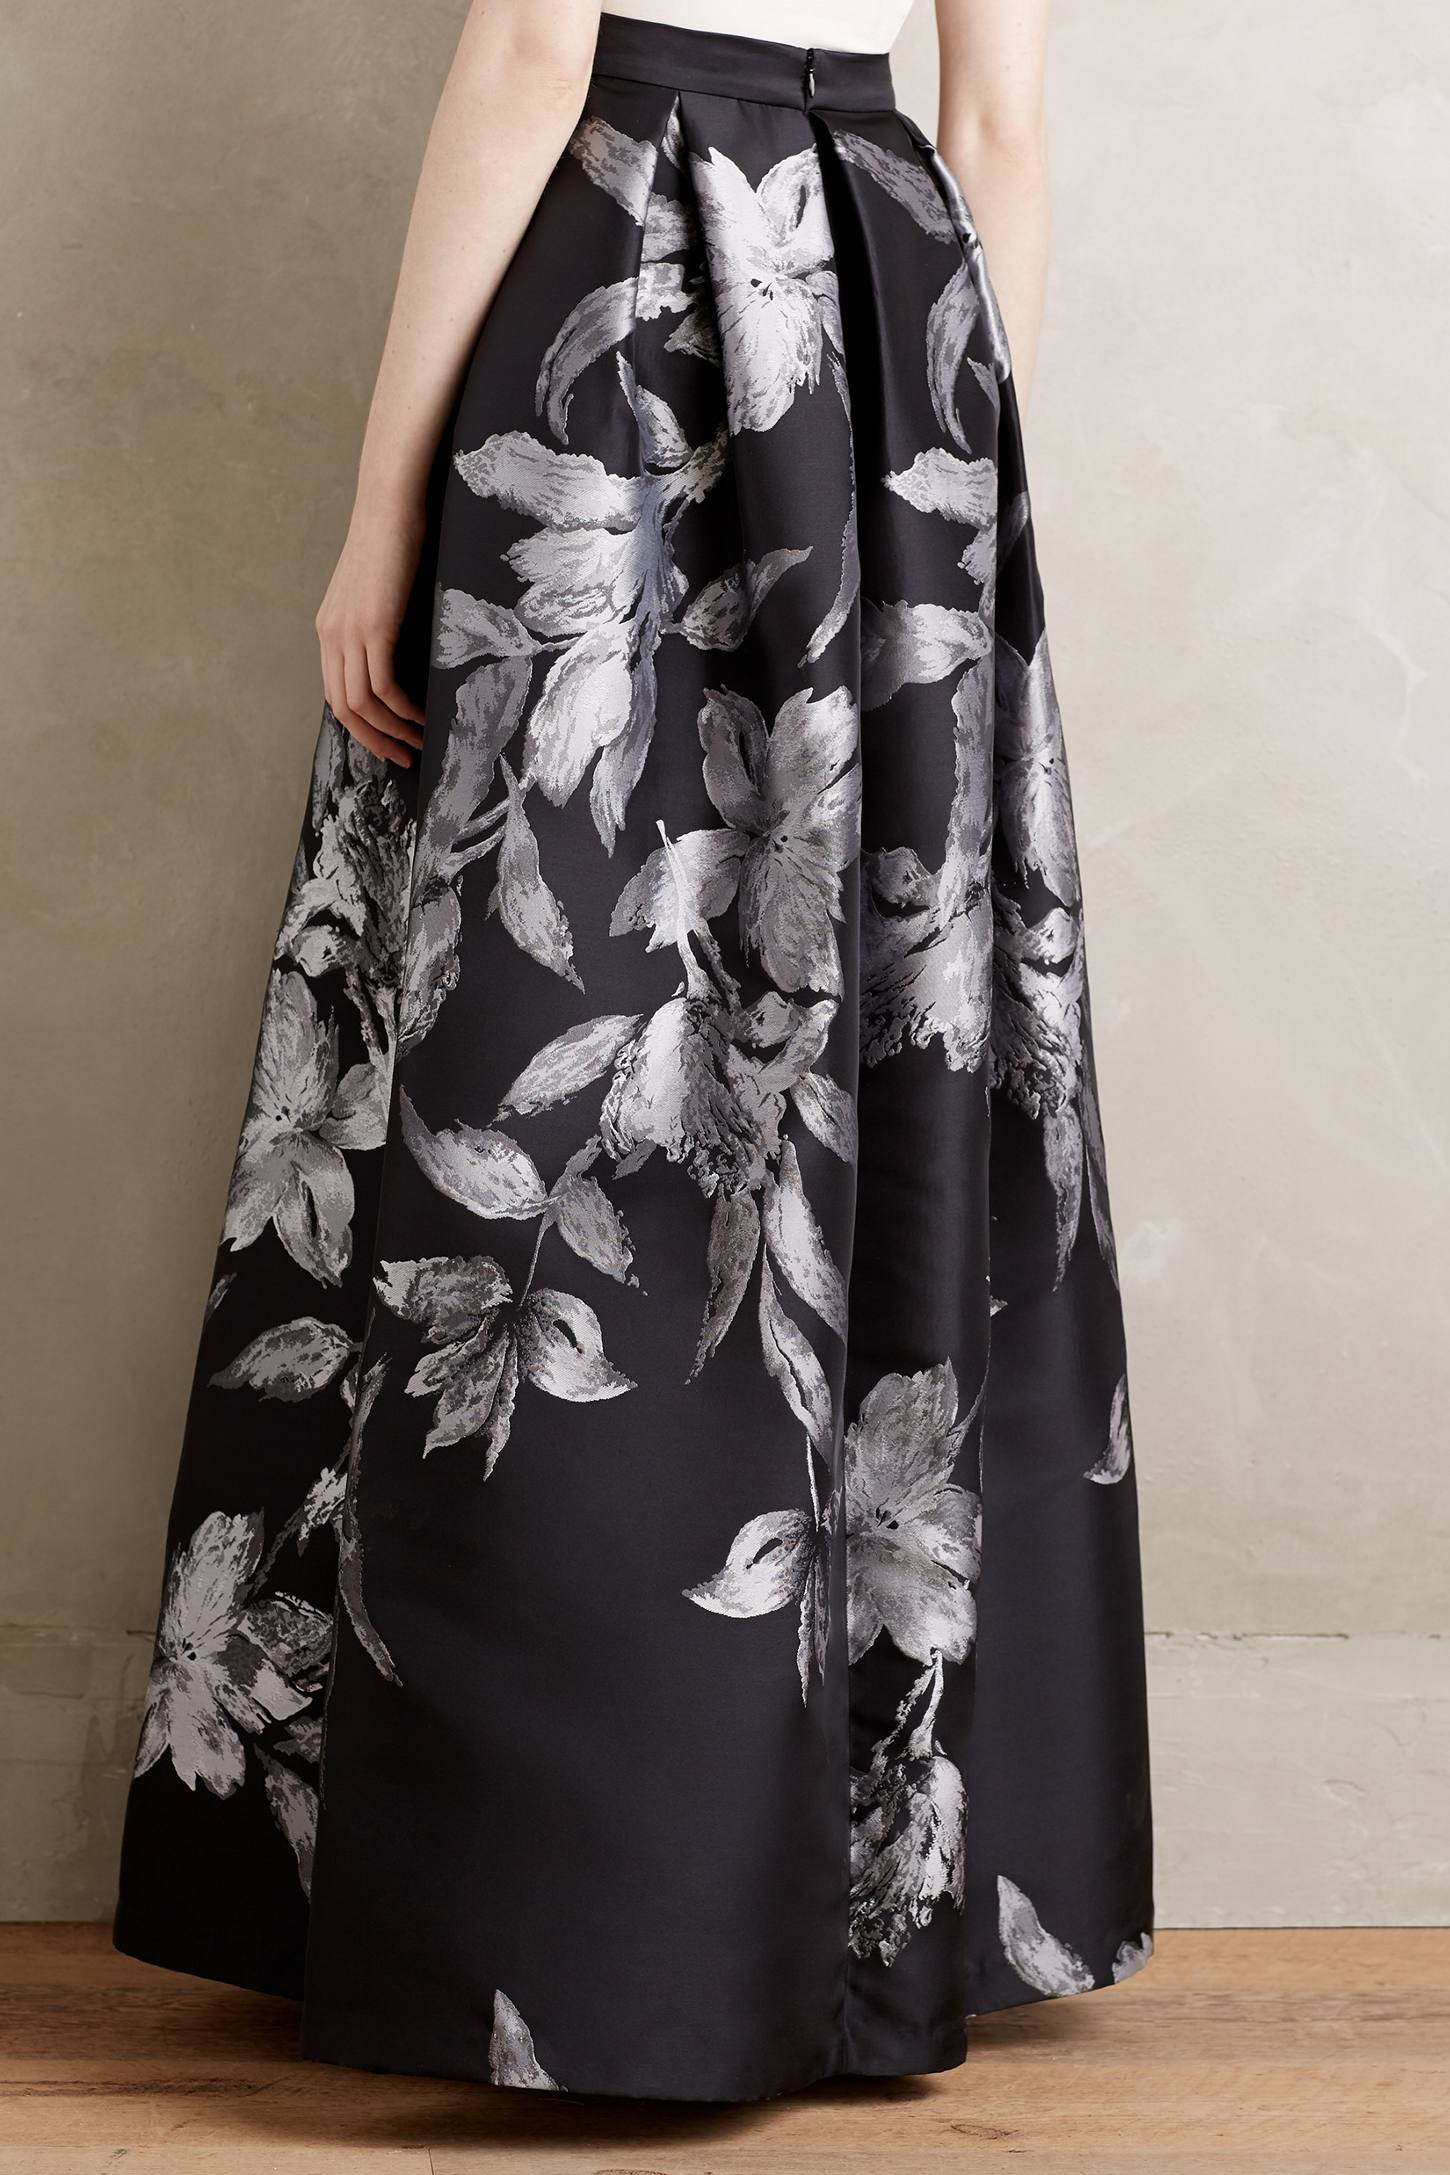 Etched Blooms Ball Skirt